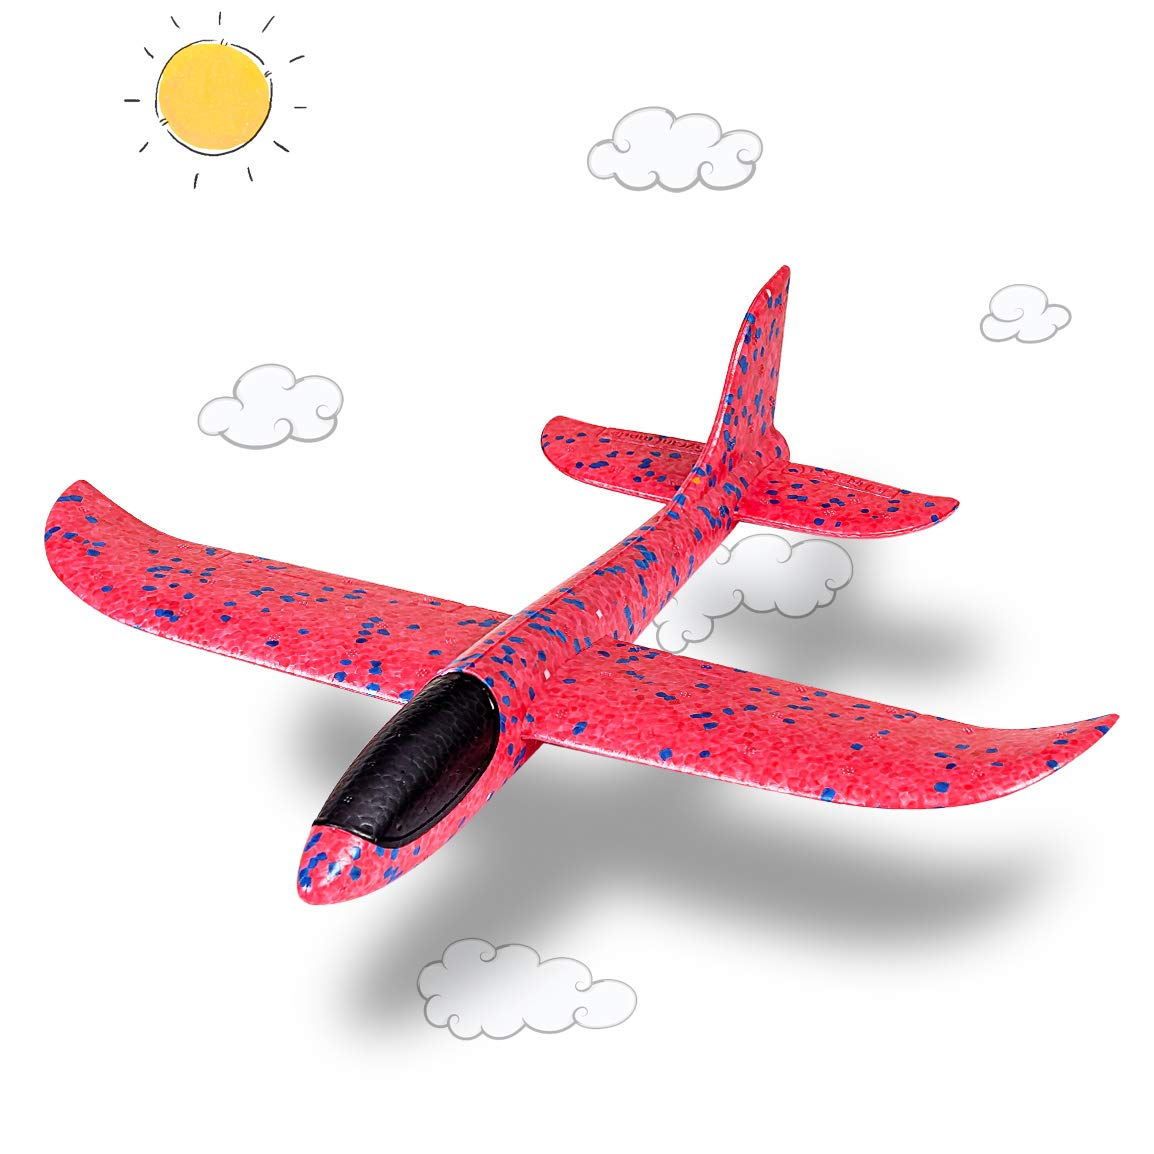 Refasy Foam Plane for Kid Large Size, Children Airplane Flying Toy for Toddlers Age 3-5 EPP Foam Activities Glider Manual Throwing Fun Outdoor Games for Adults 8 9 10 11 12 Best Gifts Boys Girls Red by Refasy